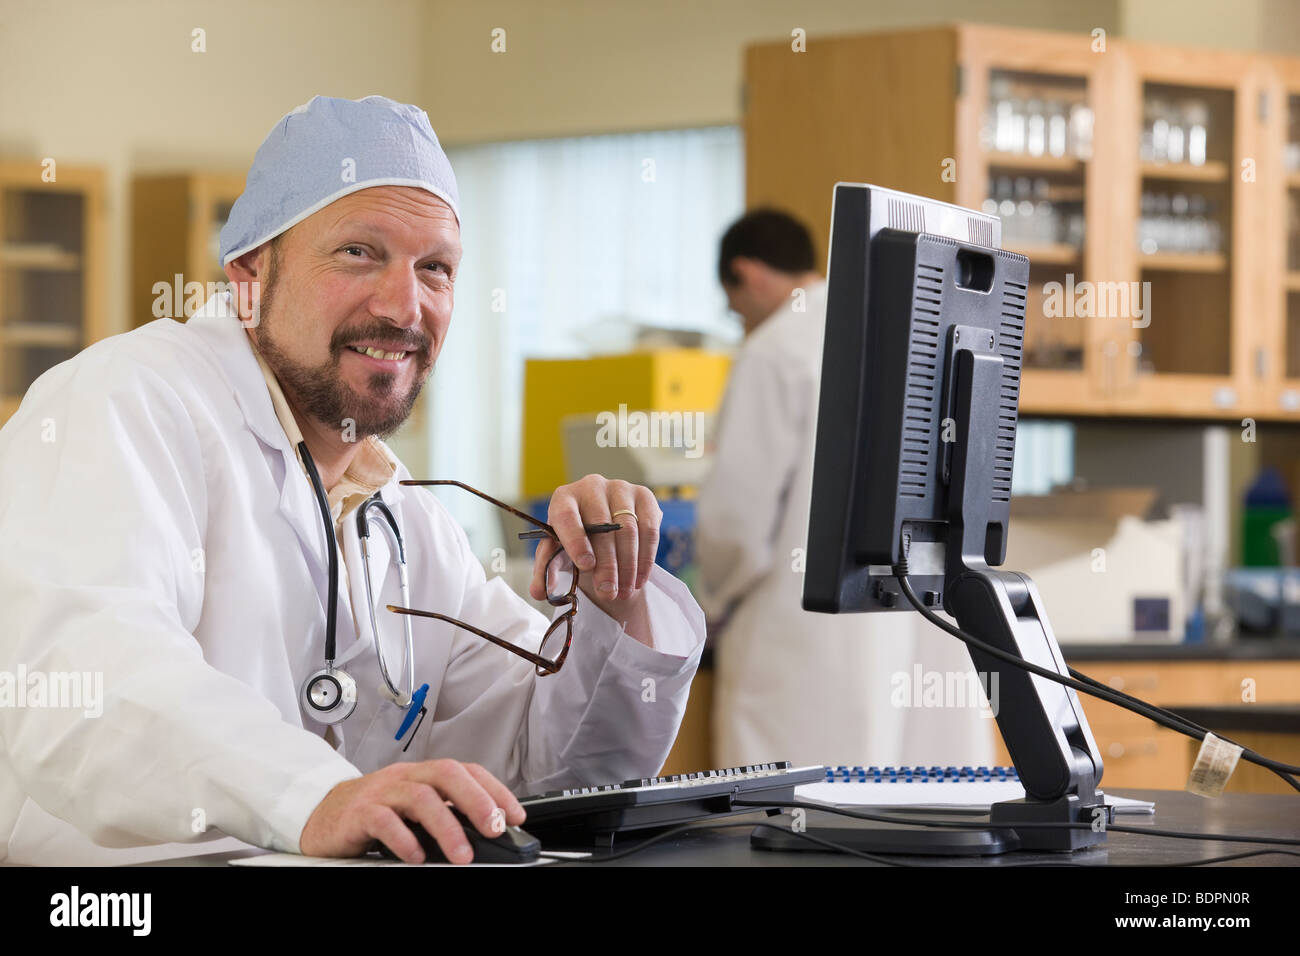 Lab technician working a  computer - Stock Image